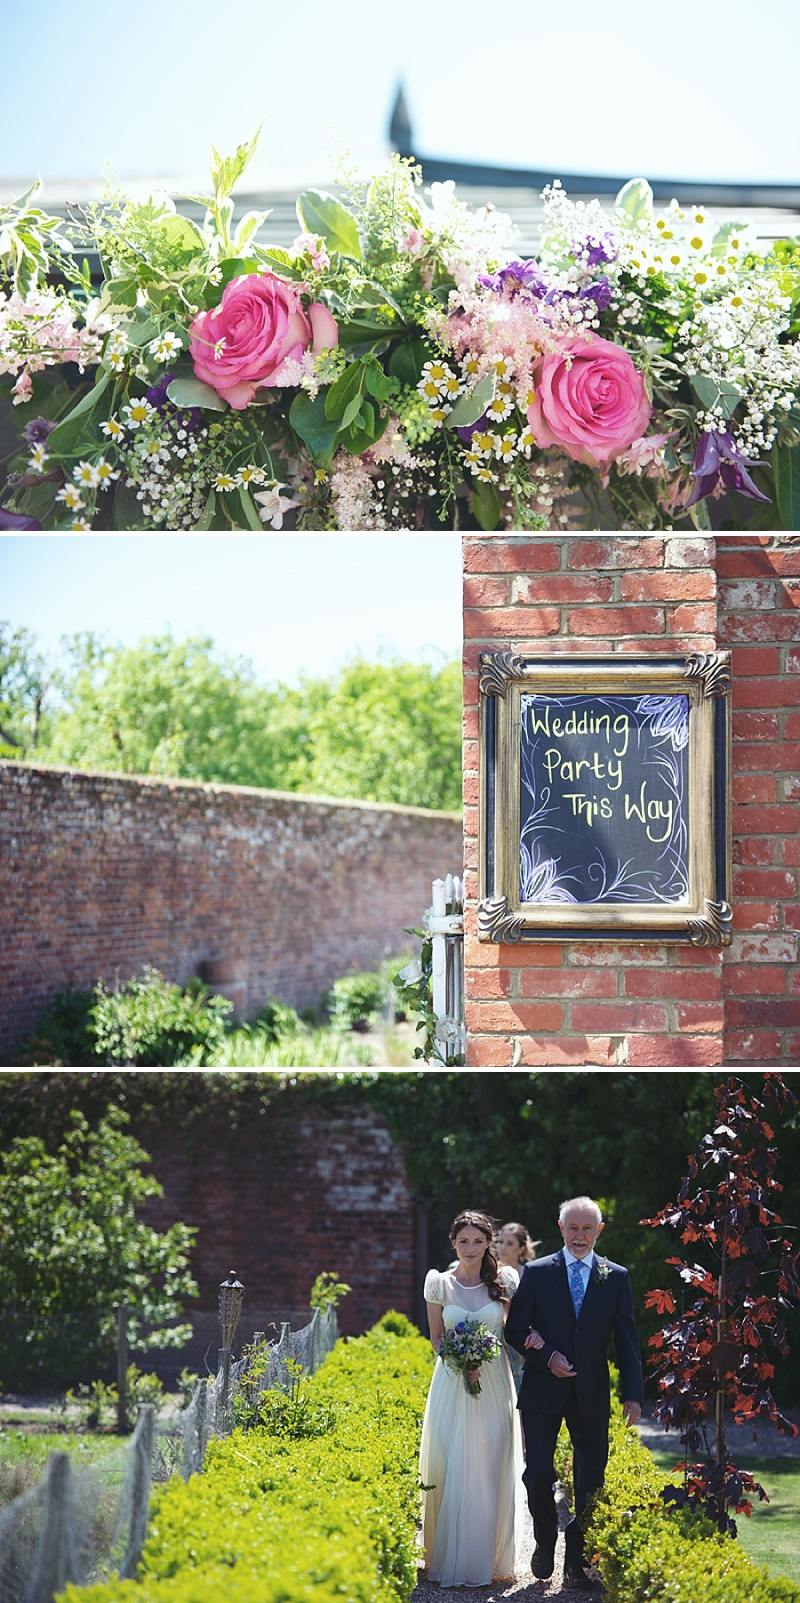 Garden Party Themed Wedding At The Secret Garden, Kent, Bride InTatyana Merenyuk, Images By Rebecca Douglas_0002